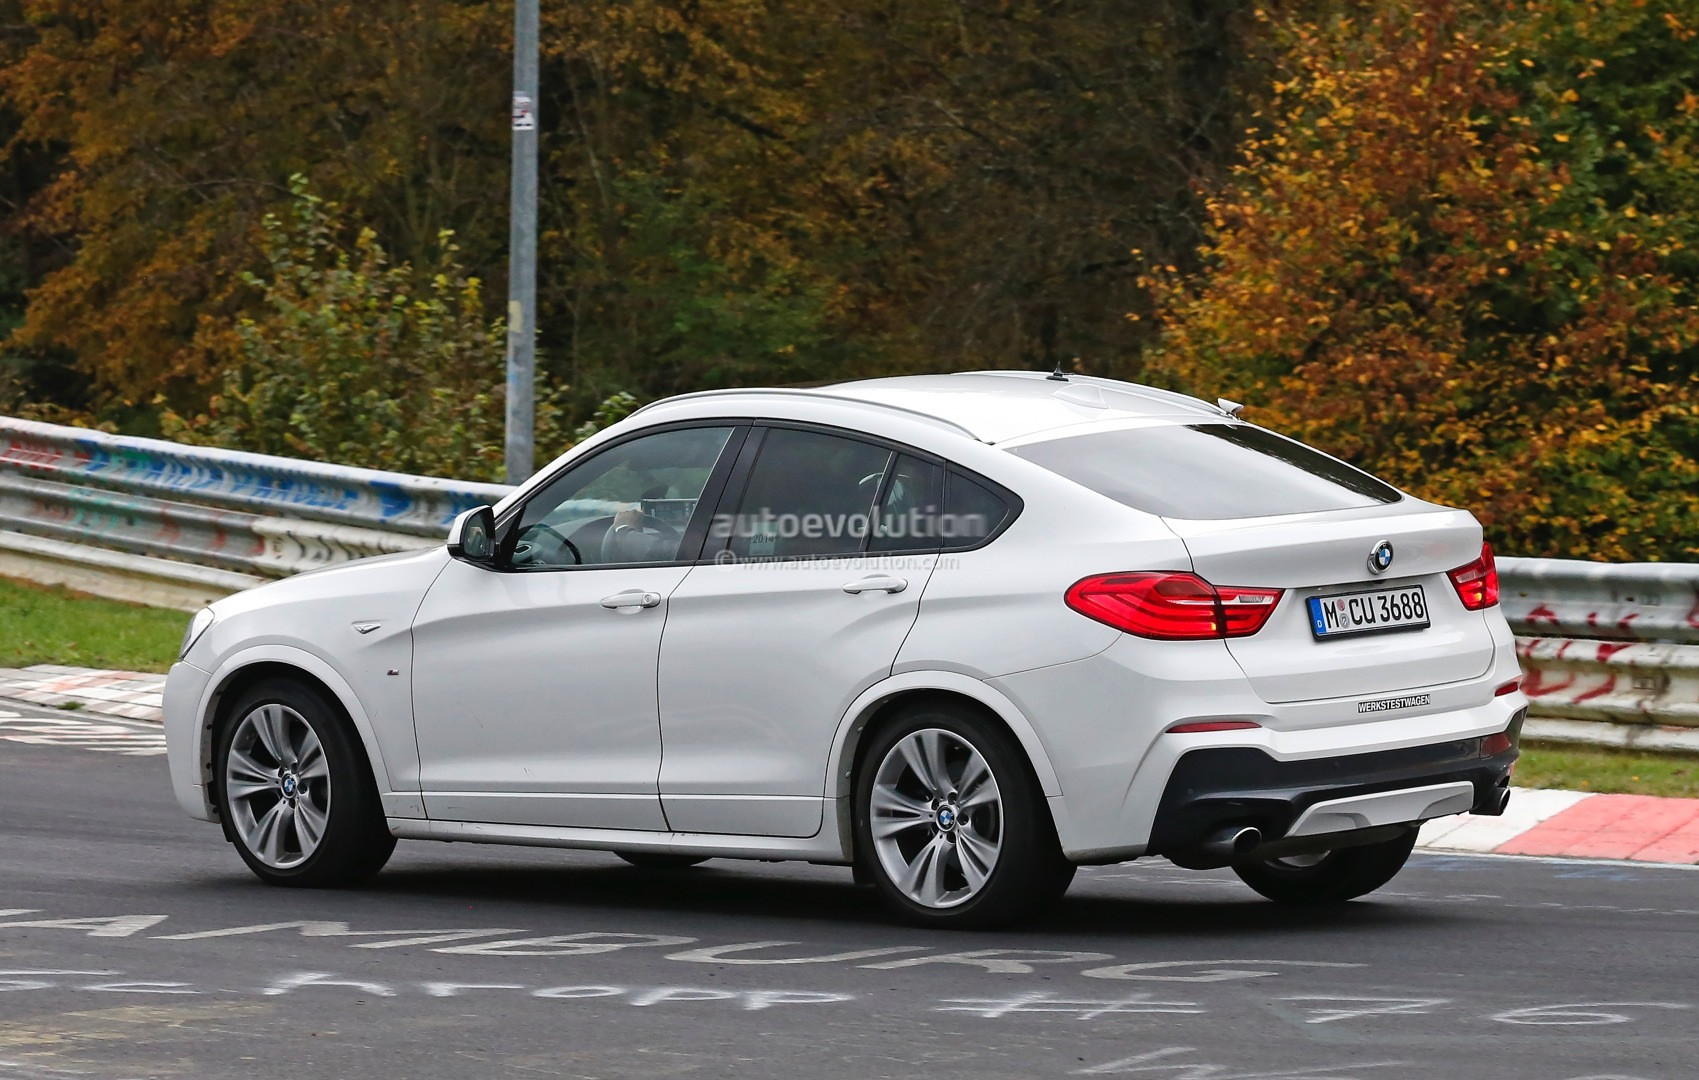 2015 bmw x4 m40i spotted camo free on the nurburgring autoevolution. Black Bedroom Furniture Sets. Home Design Ideas